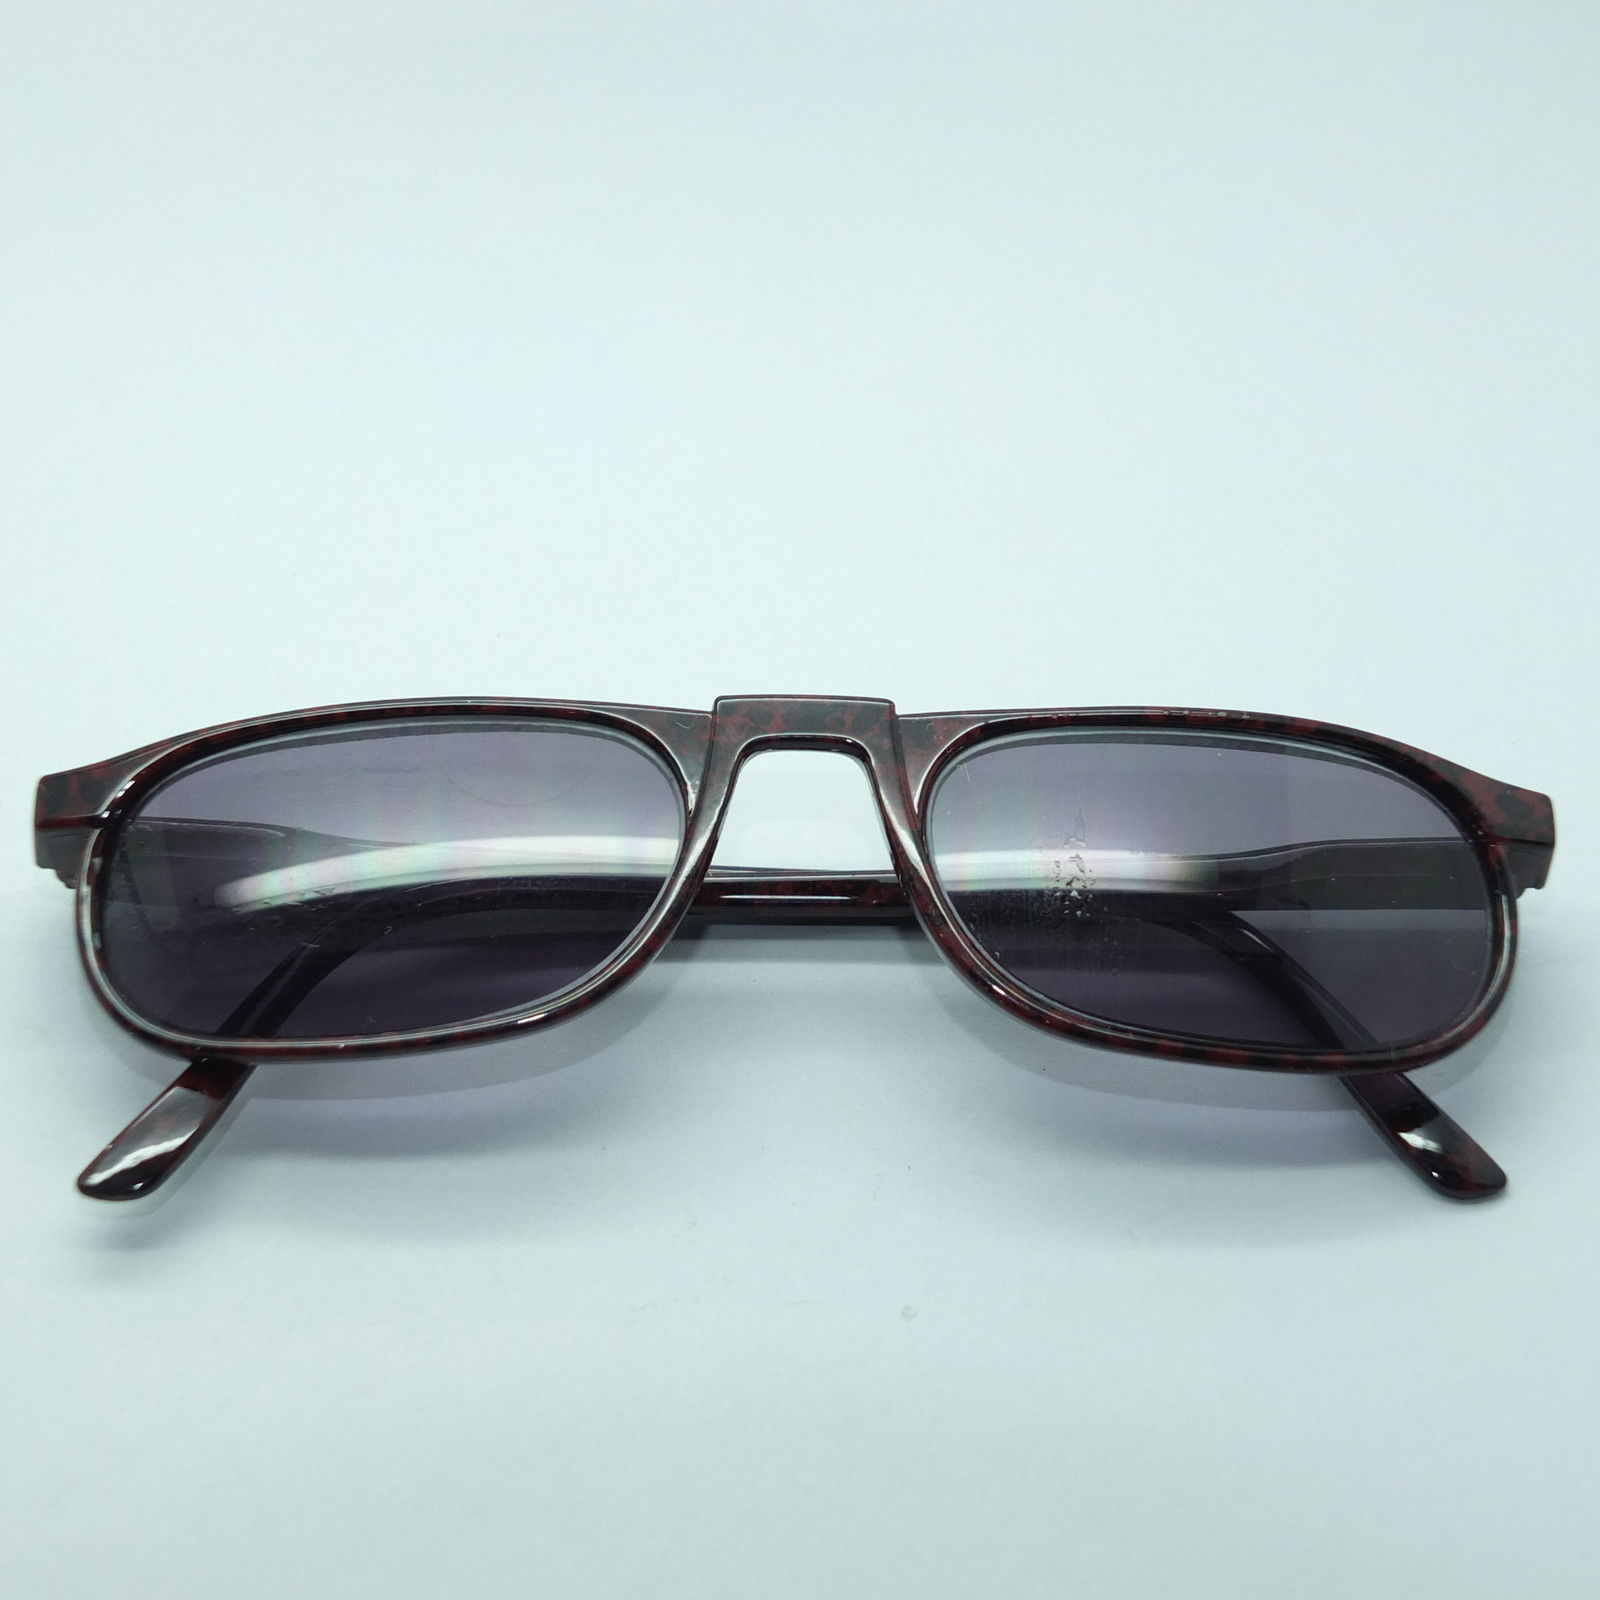 metro tech brown low rise 1 50 sunglass reading glasses